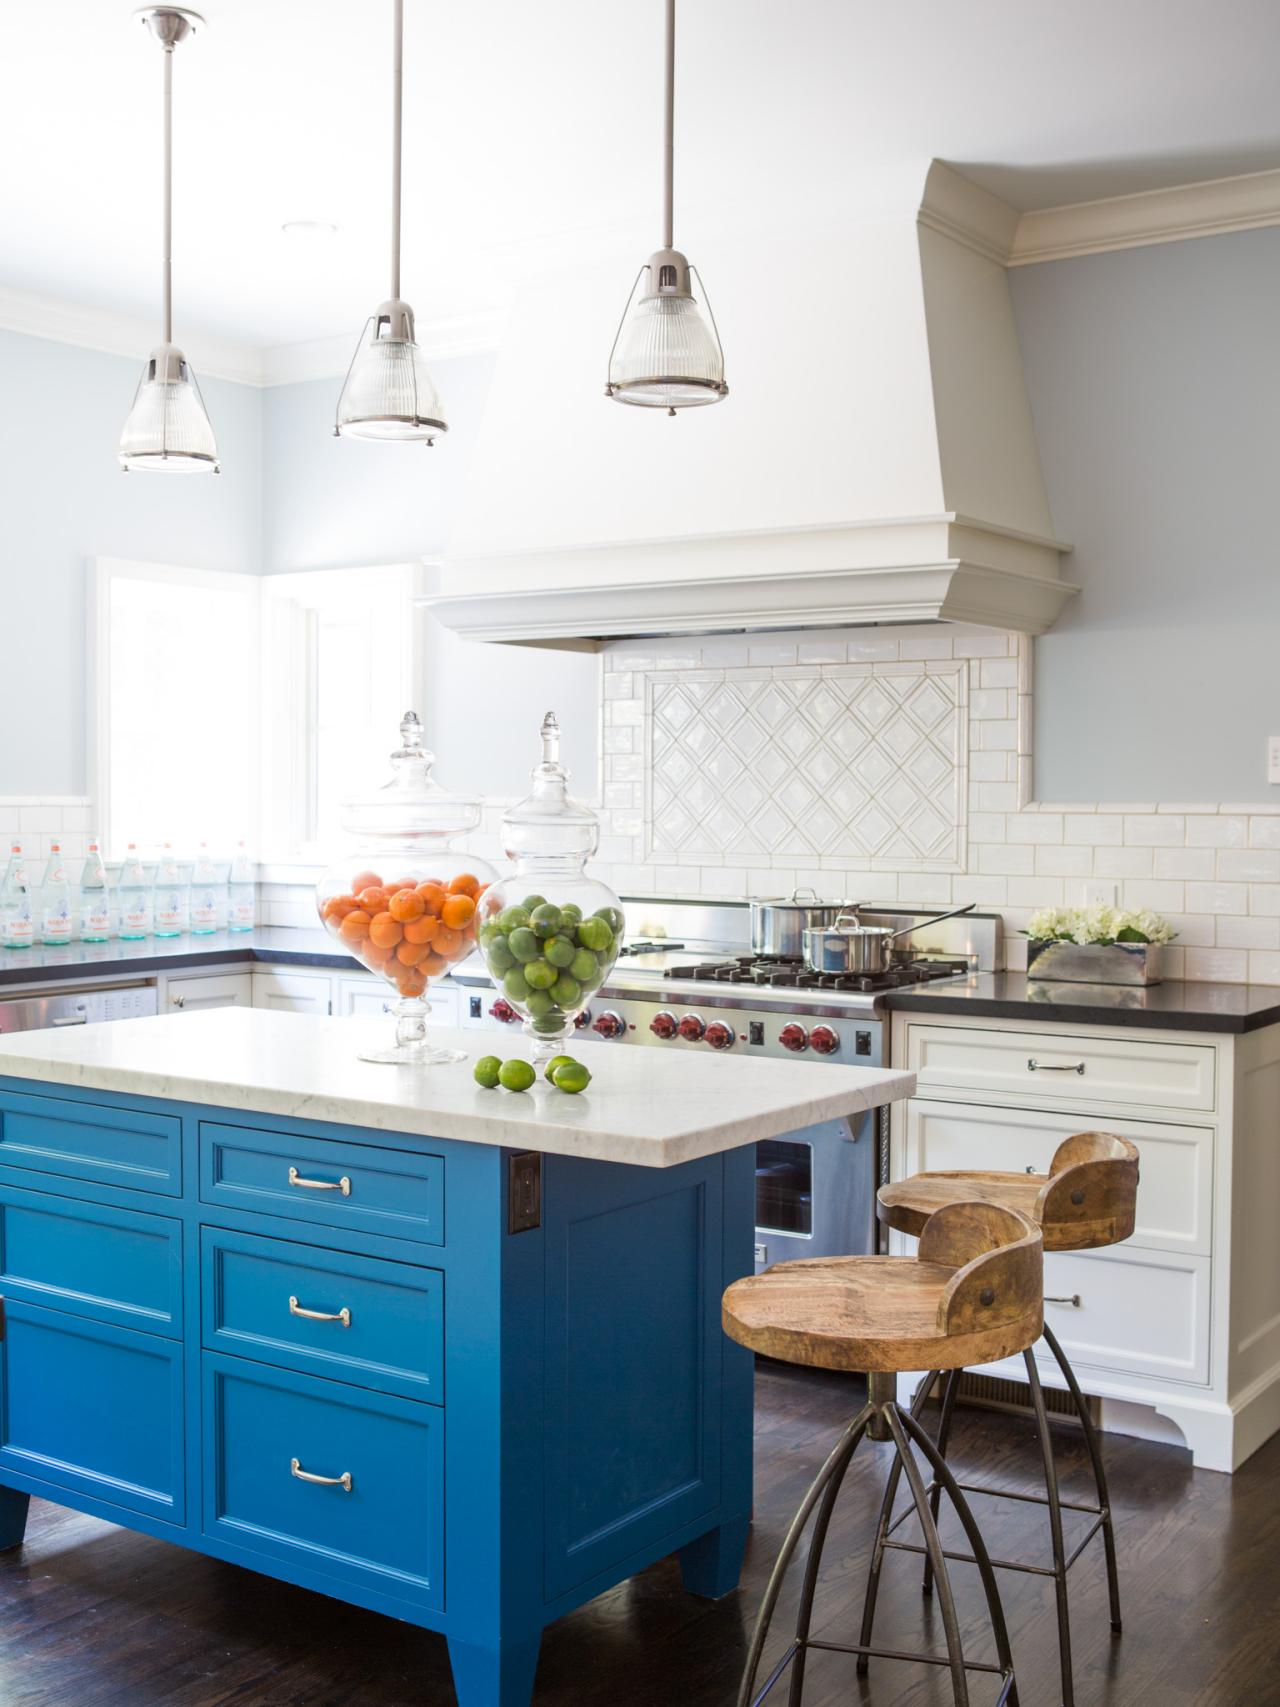 Vintage Kitchen Islands Ideas & Tips From HGTV